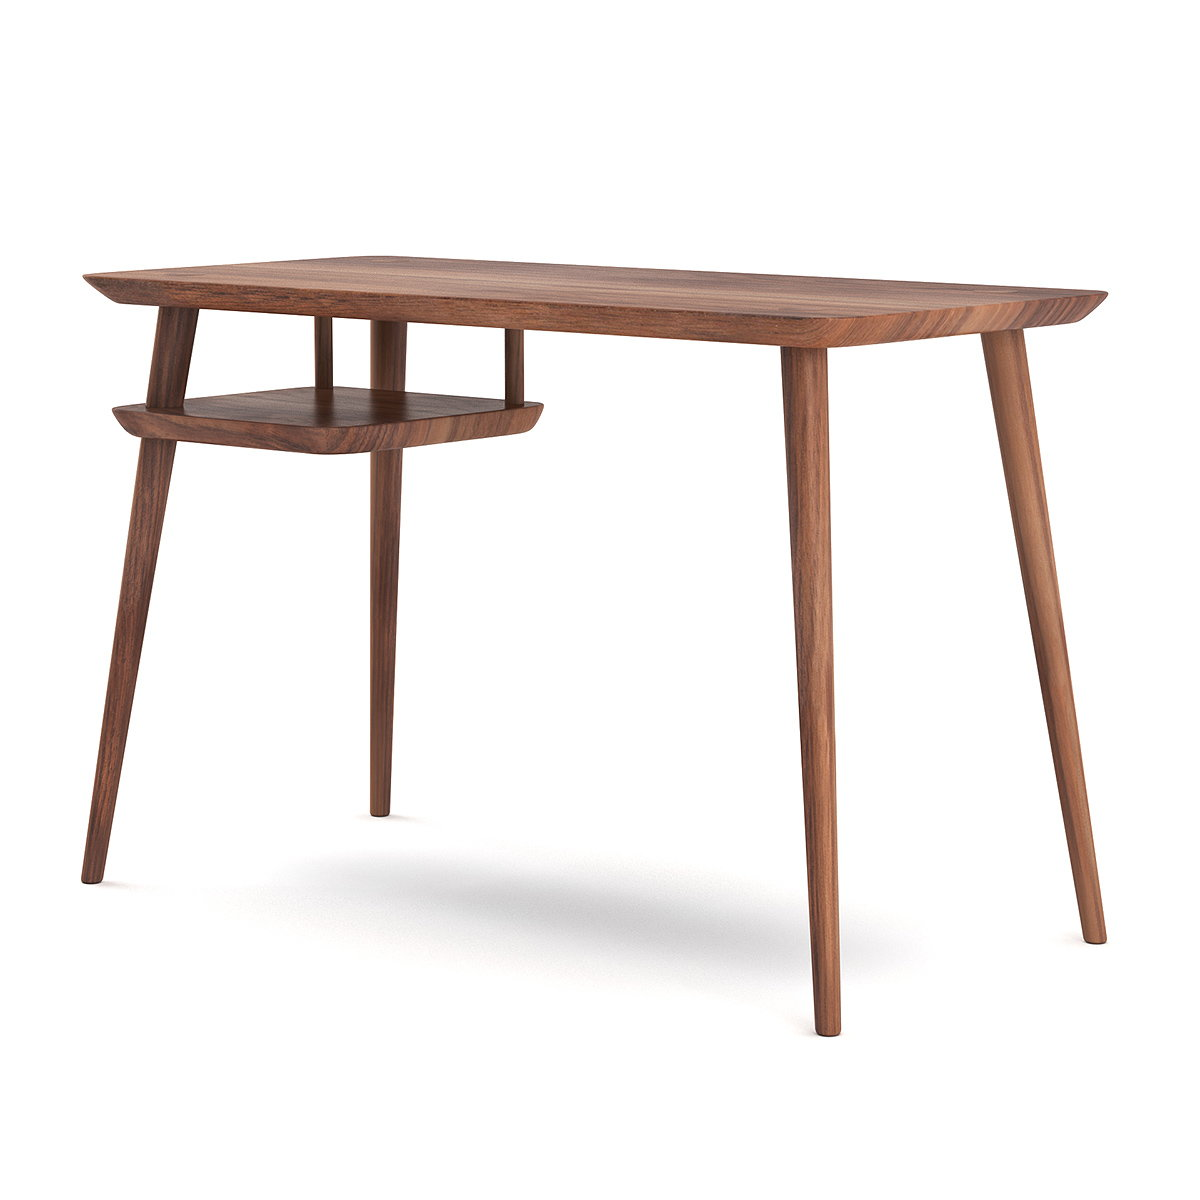 Medley Debuts Hank Monitor Desk Handcrafted from FSC-Certified Wood